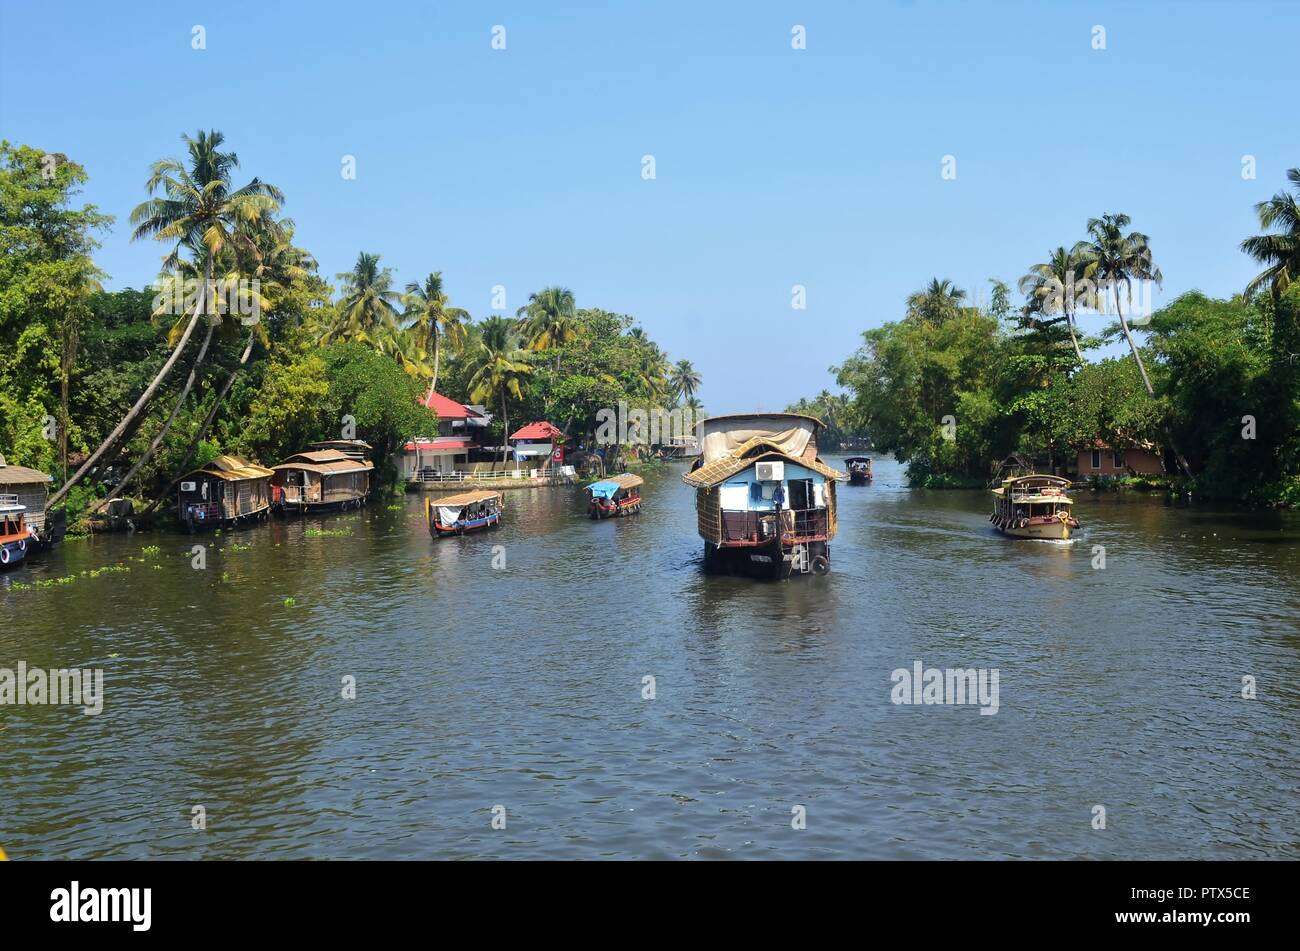 Houseboat in the Alleppey backwaters/Alappuzha-Kerala/India - Stock Image